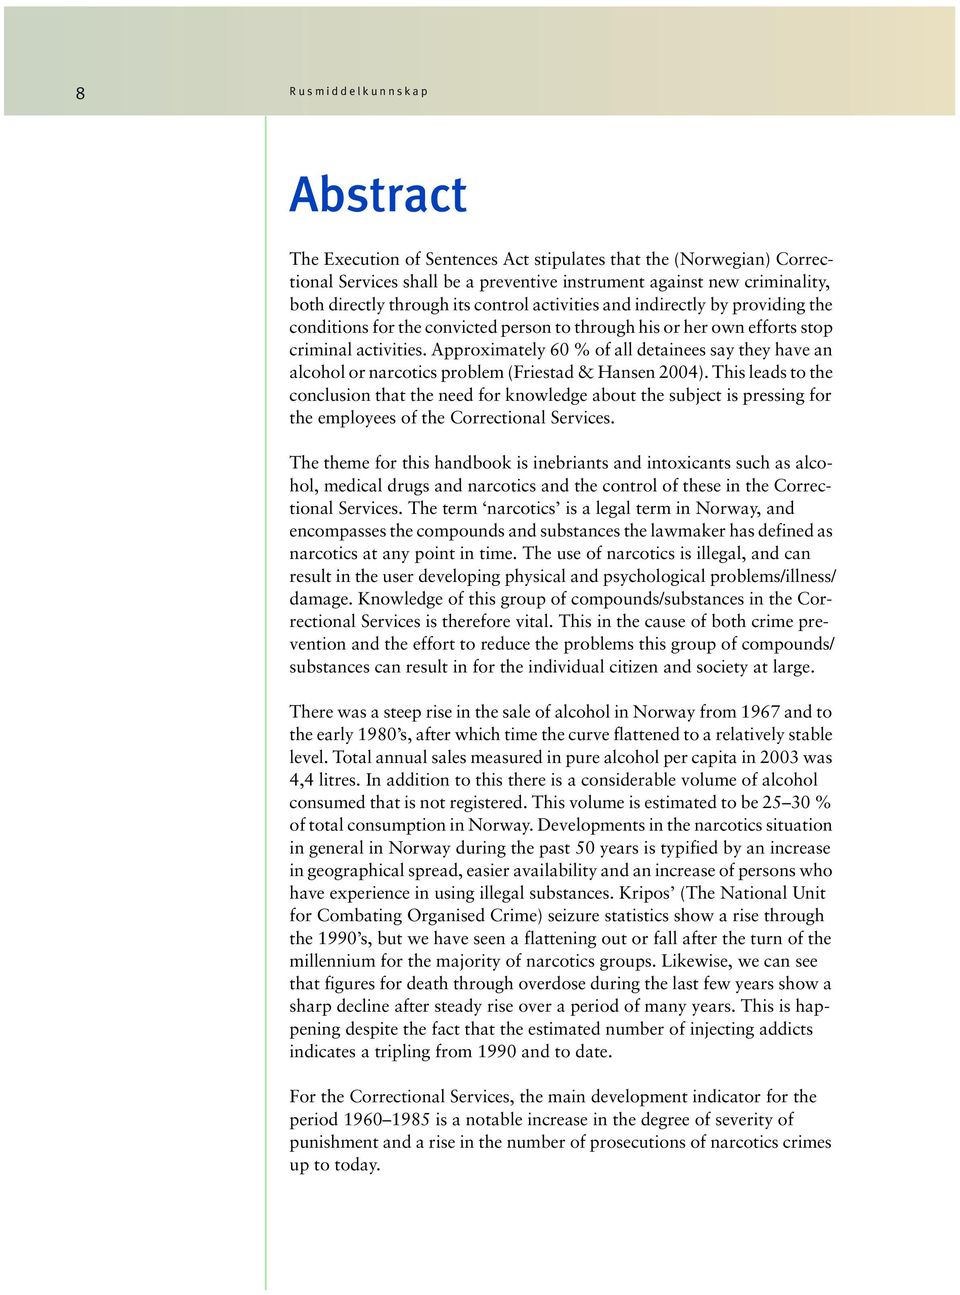 Approximately 60 % of all detainees say they have an alcohol or narcotics problem (Friestad & Hansen 2004).